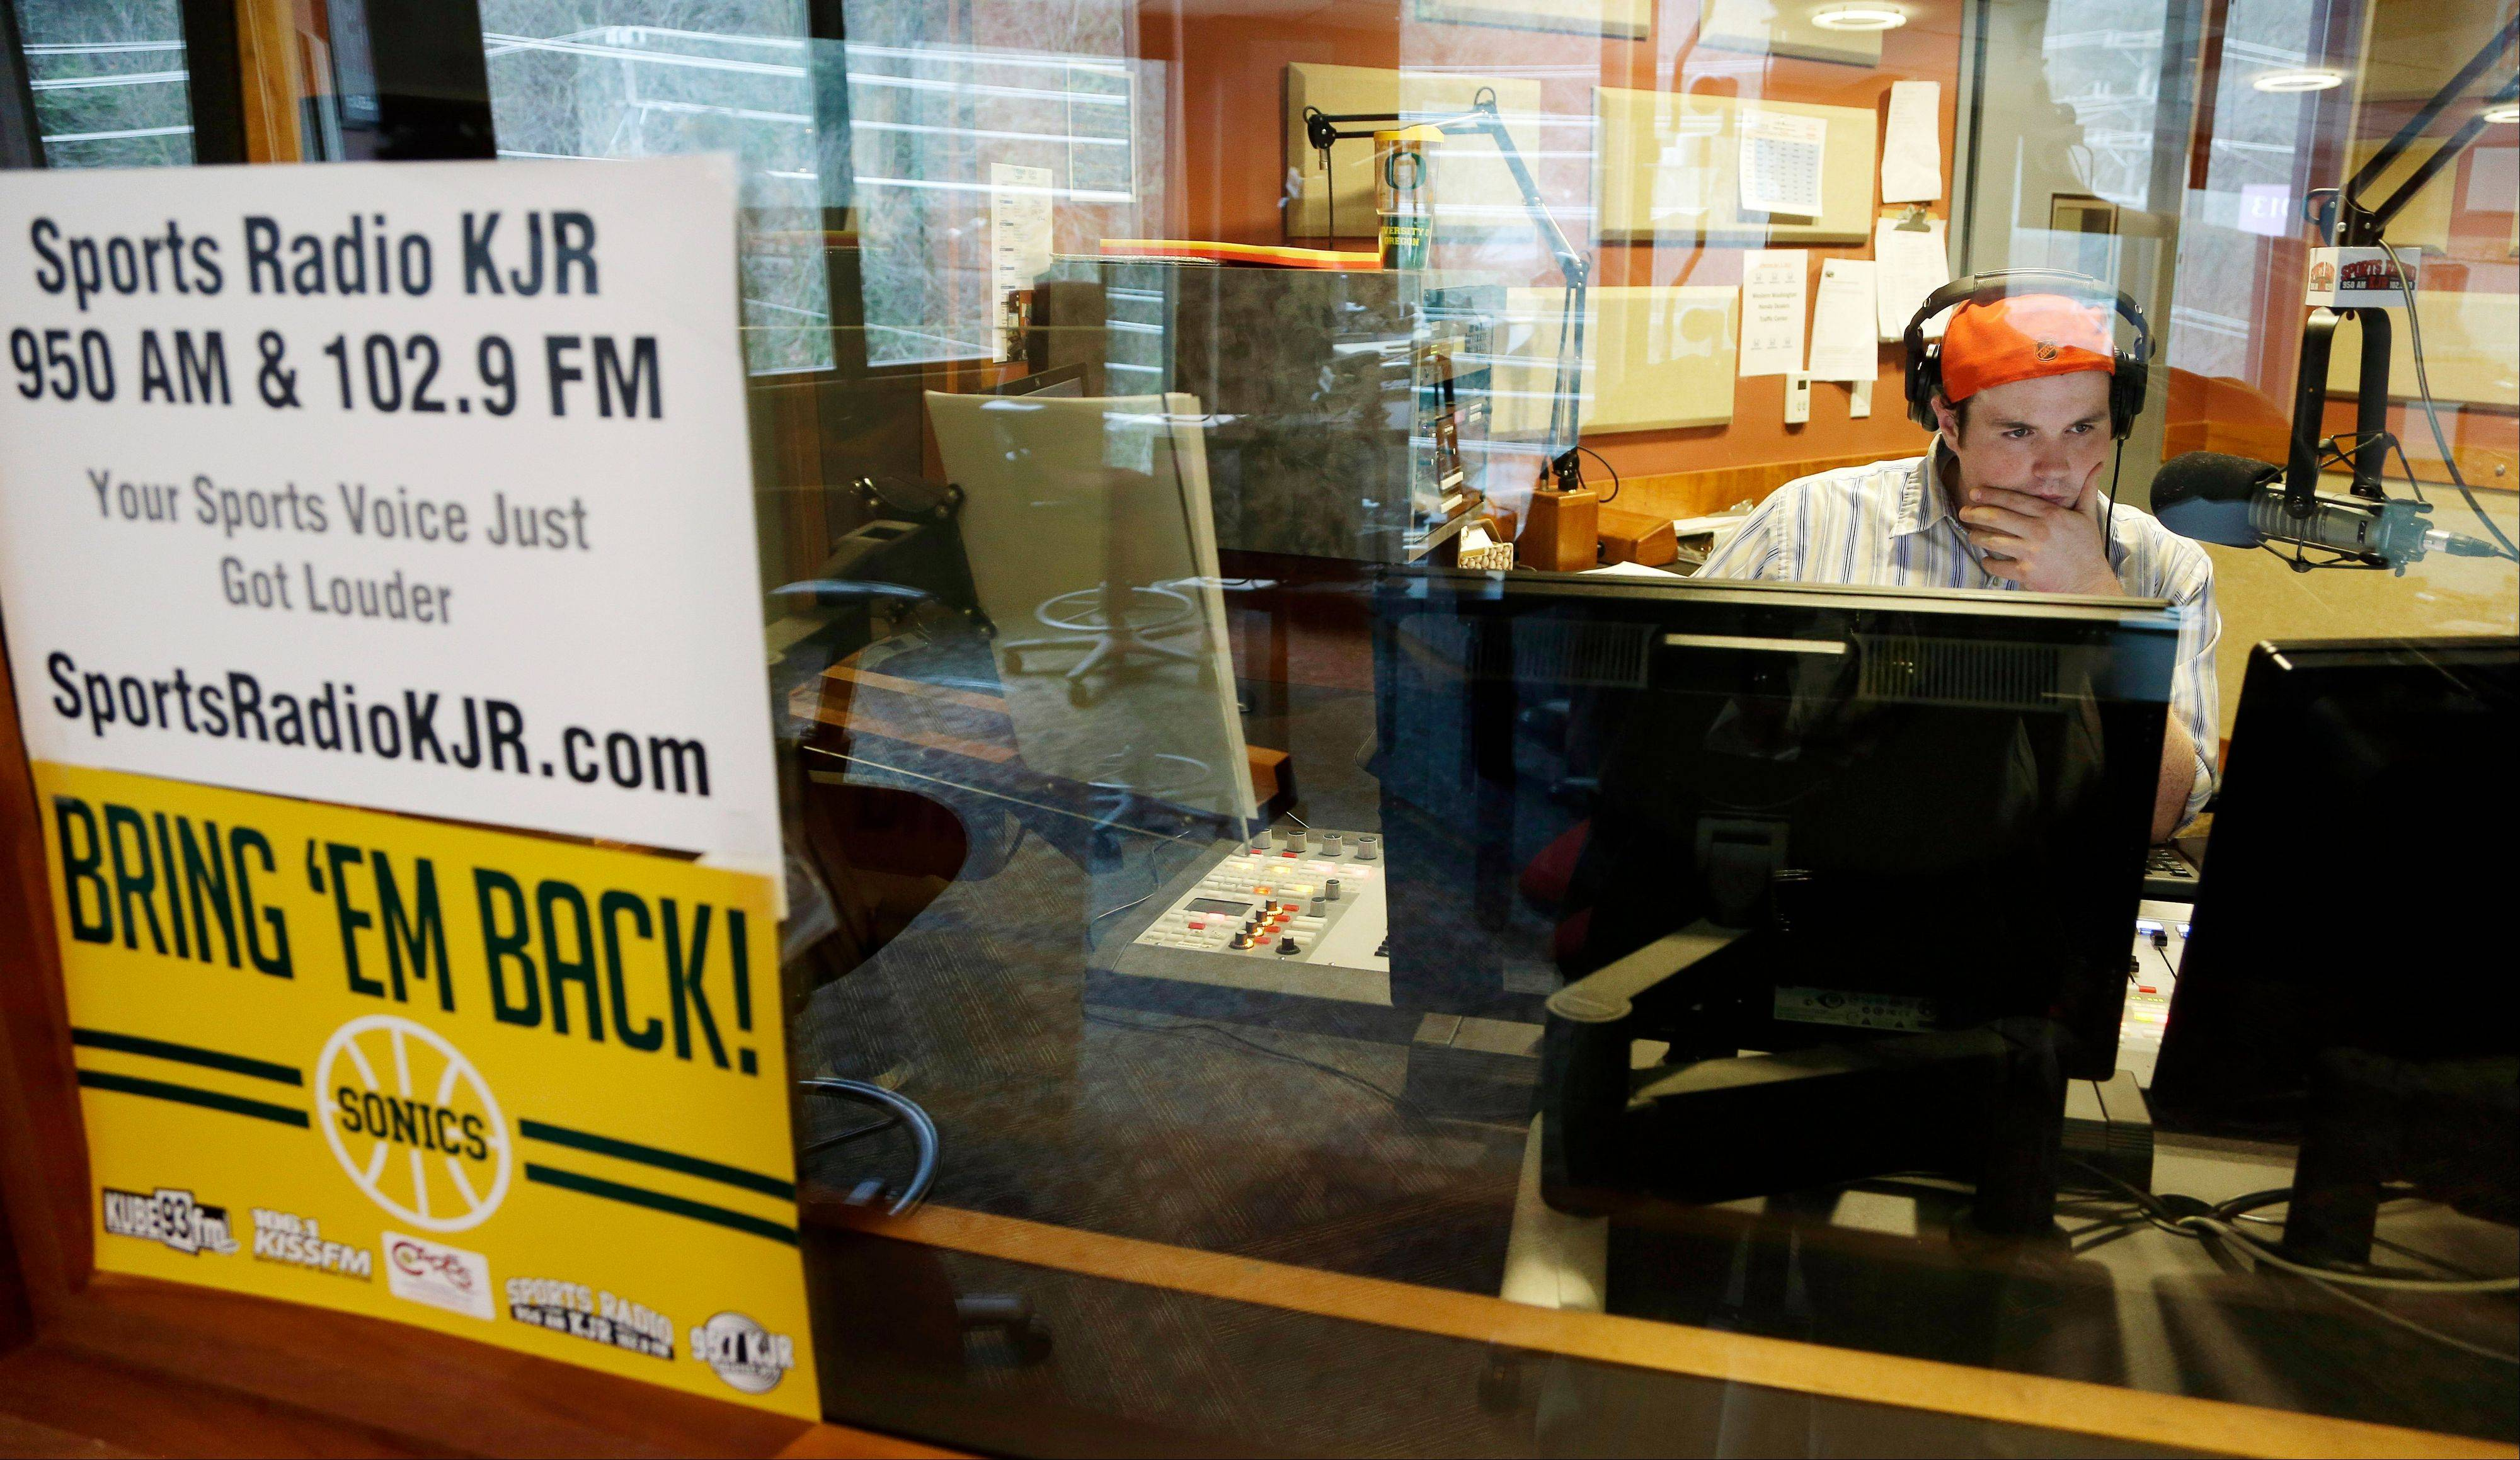 "Kevin Shockey, producer of the Ian Furness Show, works in a radio booth at sports radio station KJR in Seattle, Monday, Jan. 21, 2013, next to a sign that reads ""Bring 'Em"